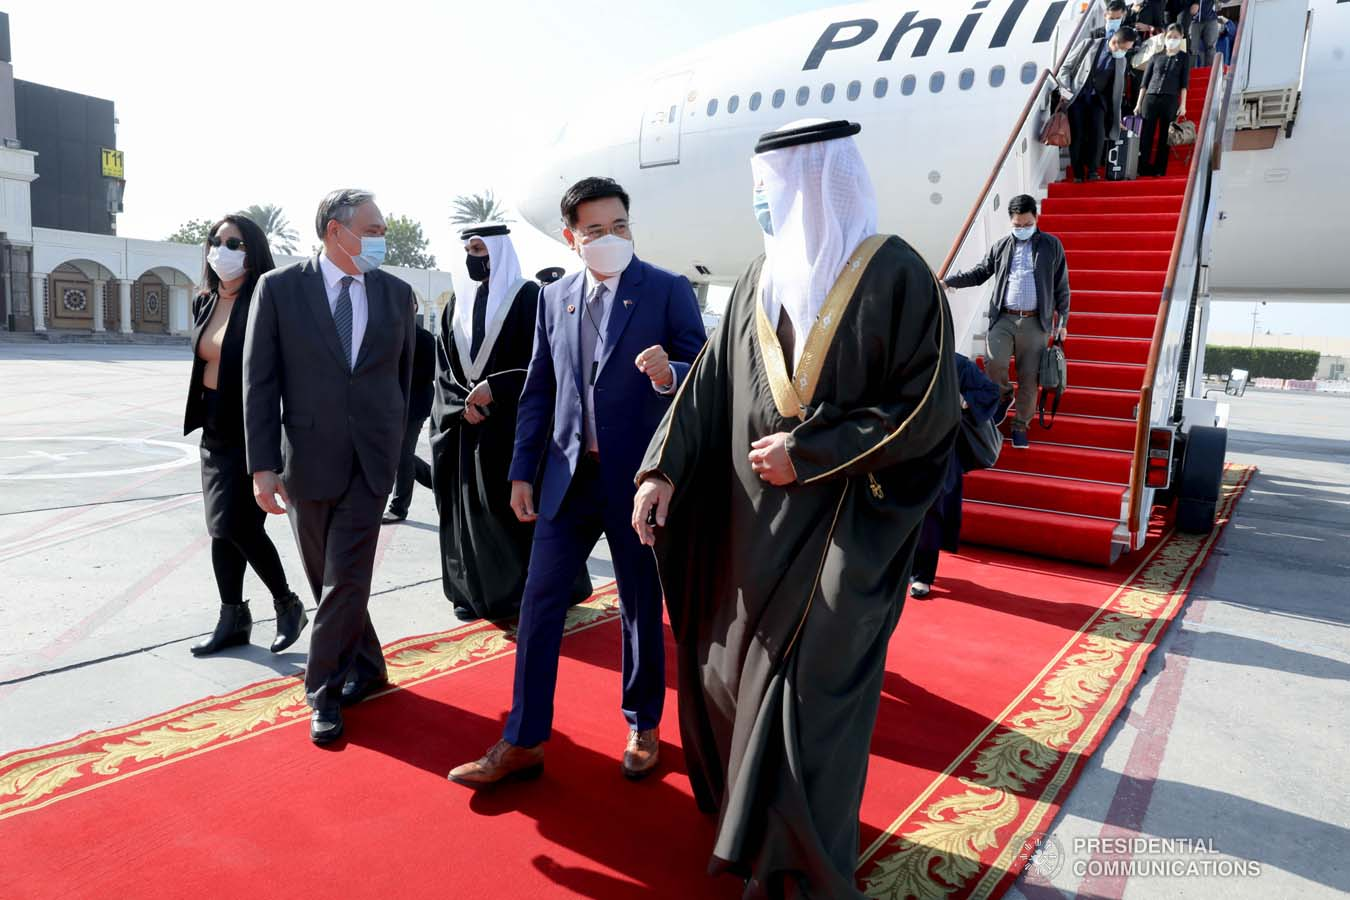 """WARM WELCOME. Kingdom of Bahrain Assistant Foreign Minister Abdulla bin Faisal bin Jabur Al Doseri warmly welcomed the 14-man delegation of the Philippines led by the Chief of Presidential Protocol and Presidential Assistant on Foreign Affairs (PAFA) Robert E.A. Borje at the Bahrain International Airport on December 28, 2020. Joining the Philippine delegation are Foreign Affairs Undersecretary for Migrant Workers' Affairs Sarah Arriola and Presidential Communications Assistant Secretary for Global Media and Public Affairs JV Arcena. During the meeting of the two officials, Special Envoy Borje conveyed President Rodrigo Roa Duterte's gratitude for the """"solid partnership"""" in upholding the rights and welfare of migrant workers that has """"transformed the lives of many for the better' and expressed the President's keen interest in broadening and deepening cooperation with Bahrain in areas of mutual interest, including in trade and investments, education, ICT, agriculture and public health, including diagnostics, management and treatment of COVID-19. President Duterte has designated PAFA Borje as Special Envoy for the goodwill mission for a series of intergovernmental meetings with officials of the Kingdom and to undertake Assistance-to-Nationals (ATN) and repatriation programs. Kalinga at Malasakit for Overseas Filipino Workers remain a focus area under the Duterte Administration. This is PAFA Borje's second designation as Special Envoy to the Kingdom of Bahrain. President Duterte previously appointed PAFA Borje as Special Envoy to Bahrain, Kingdom of Saudi Arabia and Tunisia in 2019. PRESIDENTIAL PHOTO"""